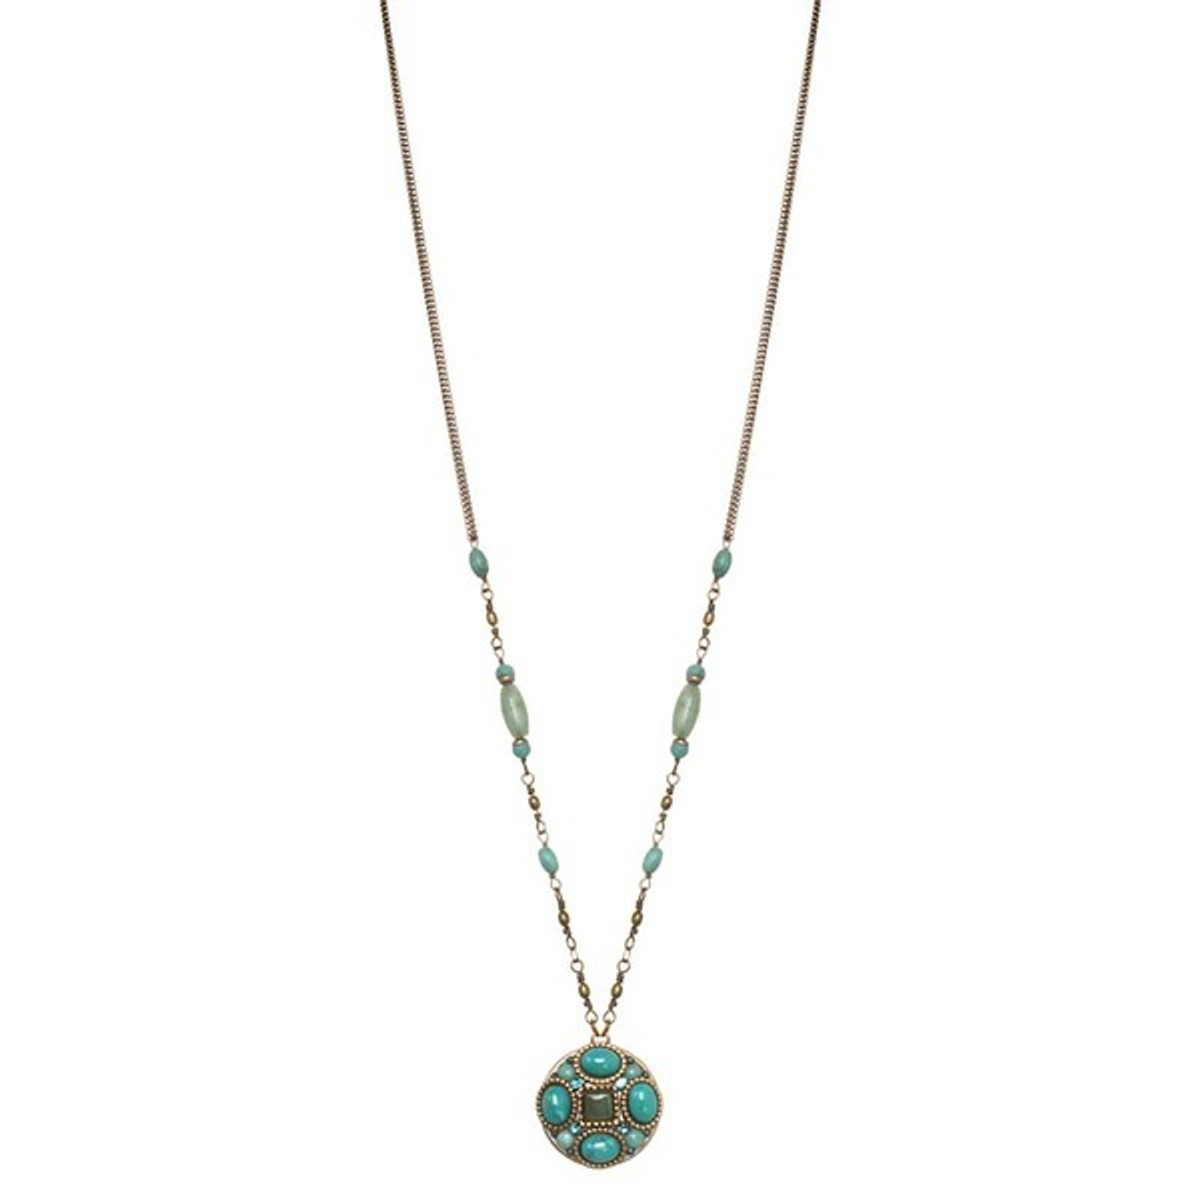 Michal Golan Jewelry Nile Turquoise Necklace